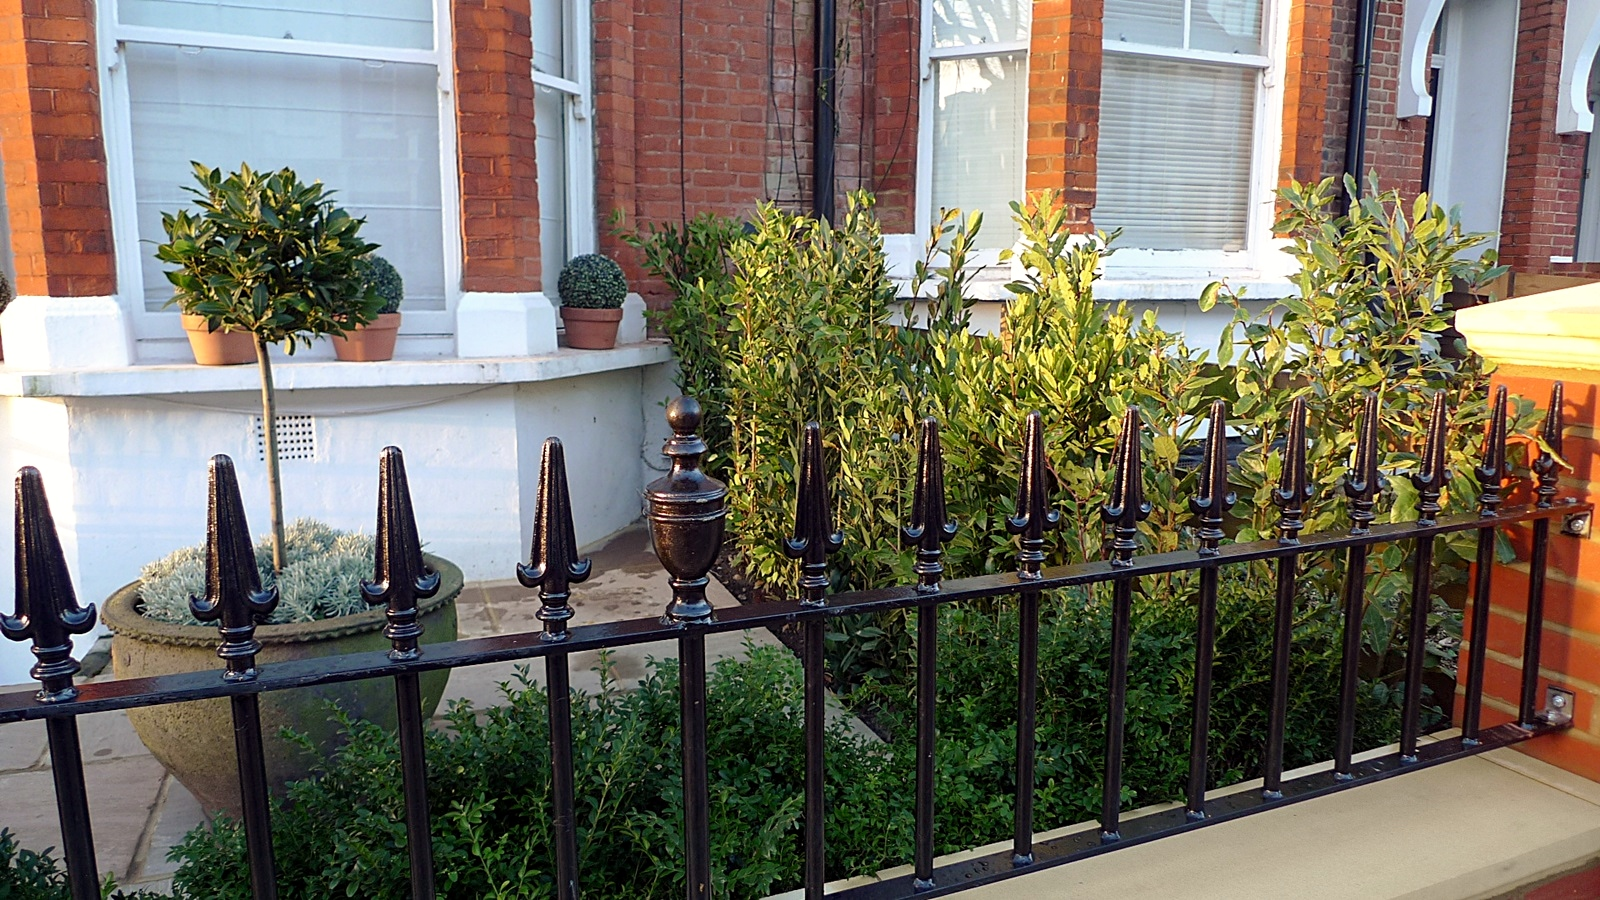 front garden ideas london unique front garden ideas london linsey evans victorian best style - Front Garden Ideas London